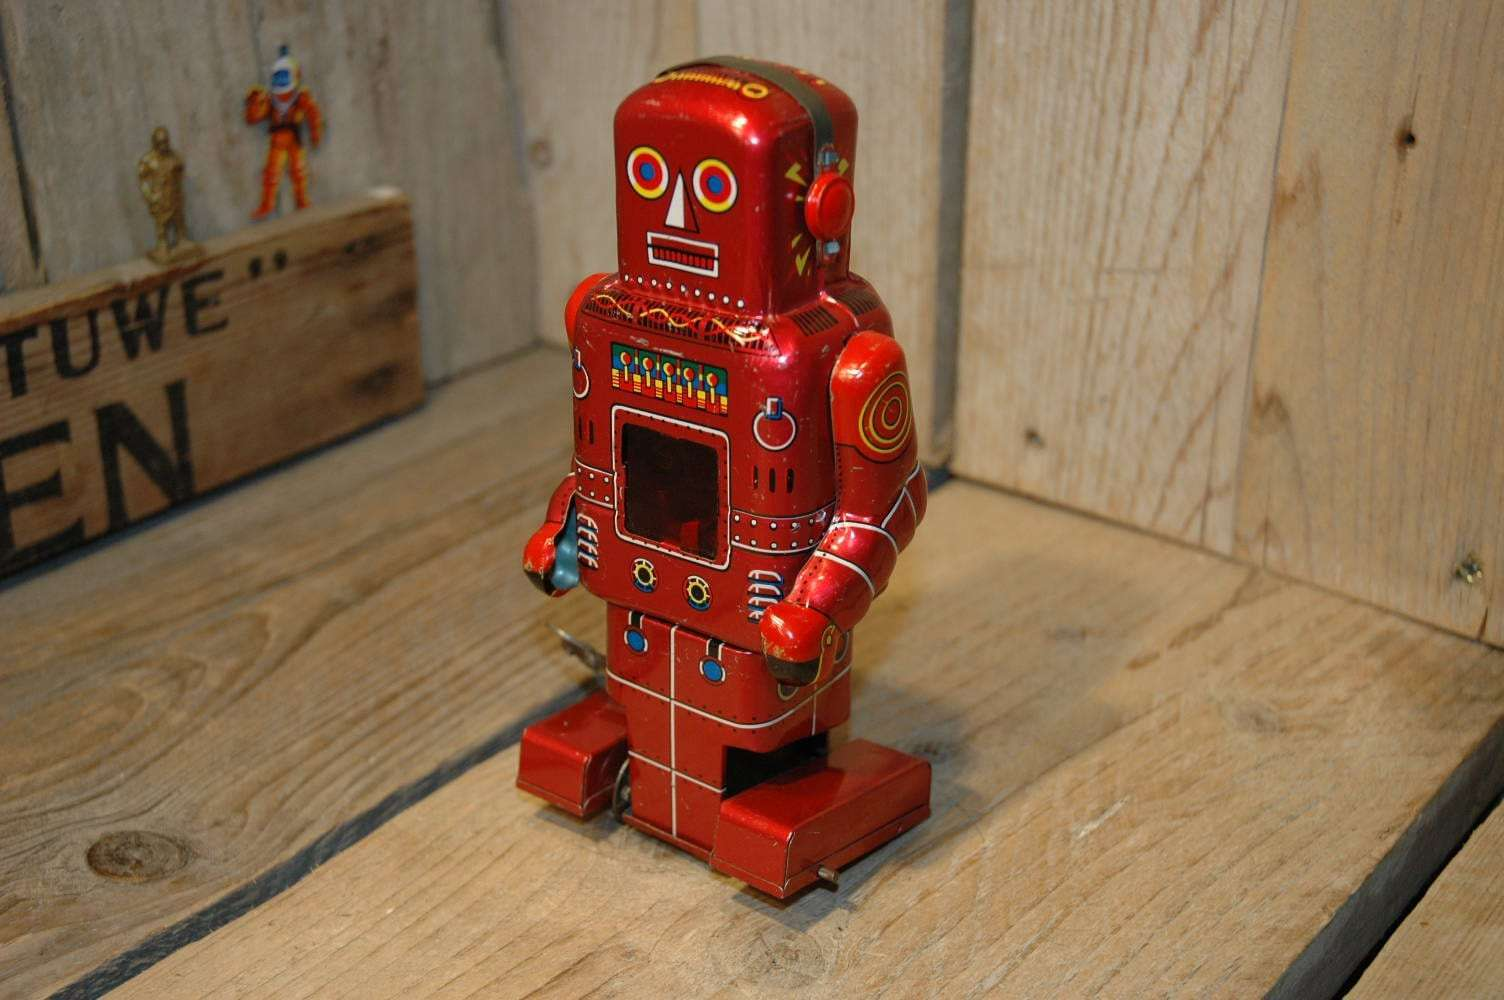 Yoneya SY - Mechanical Robot with Spark